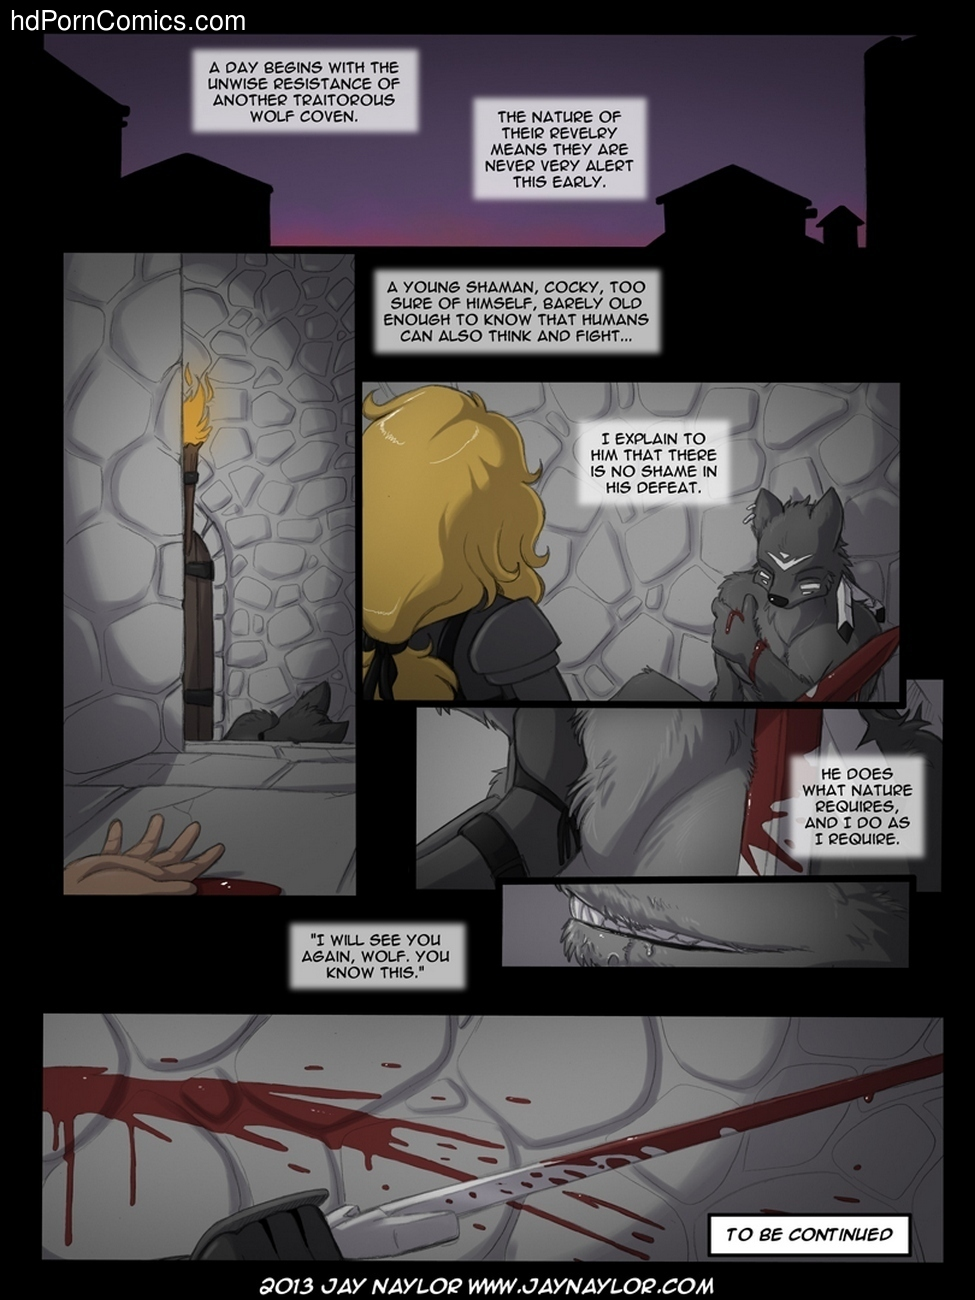 The Rise Of The Wolf Queen 1 – The Inquisitor Sex Comic